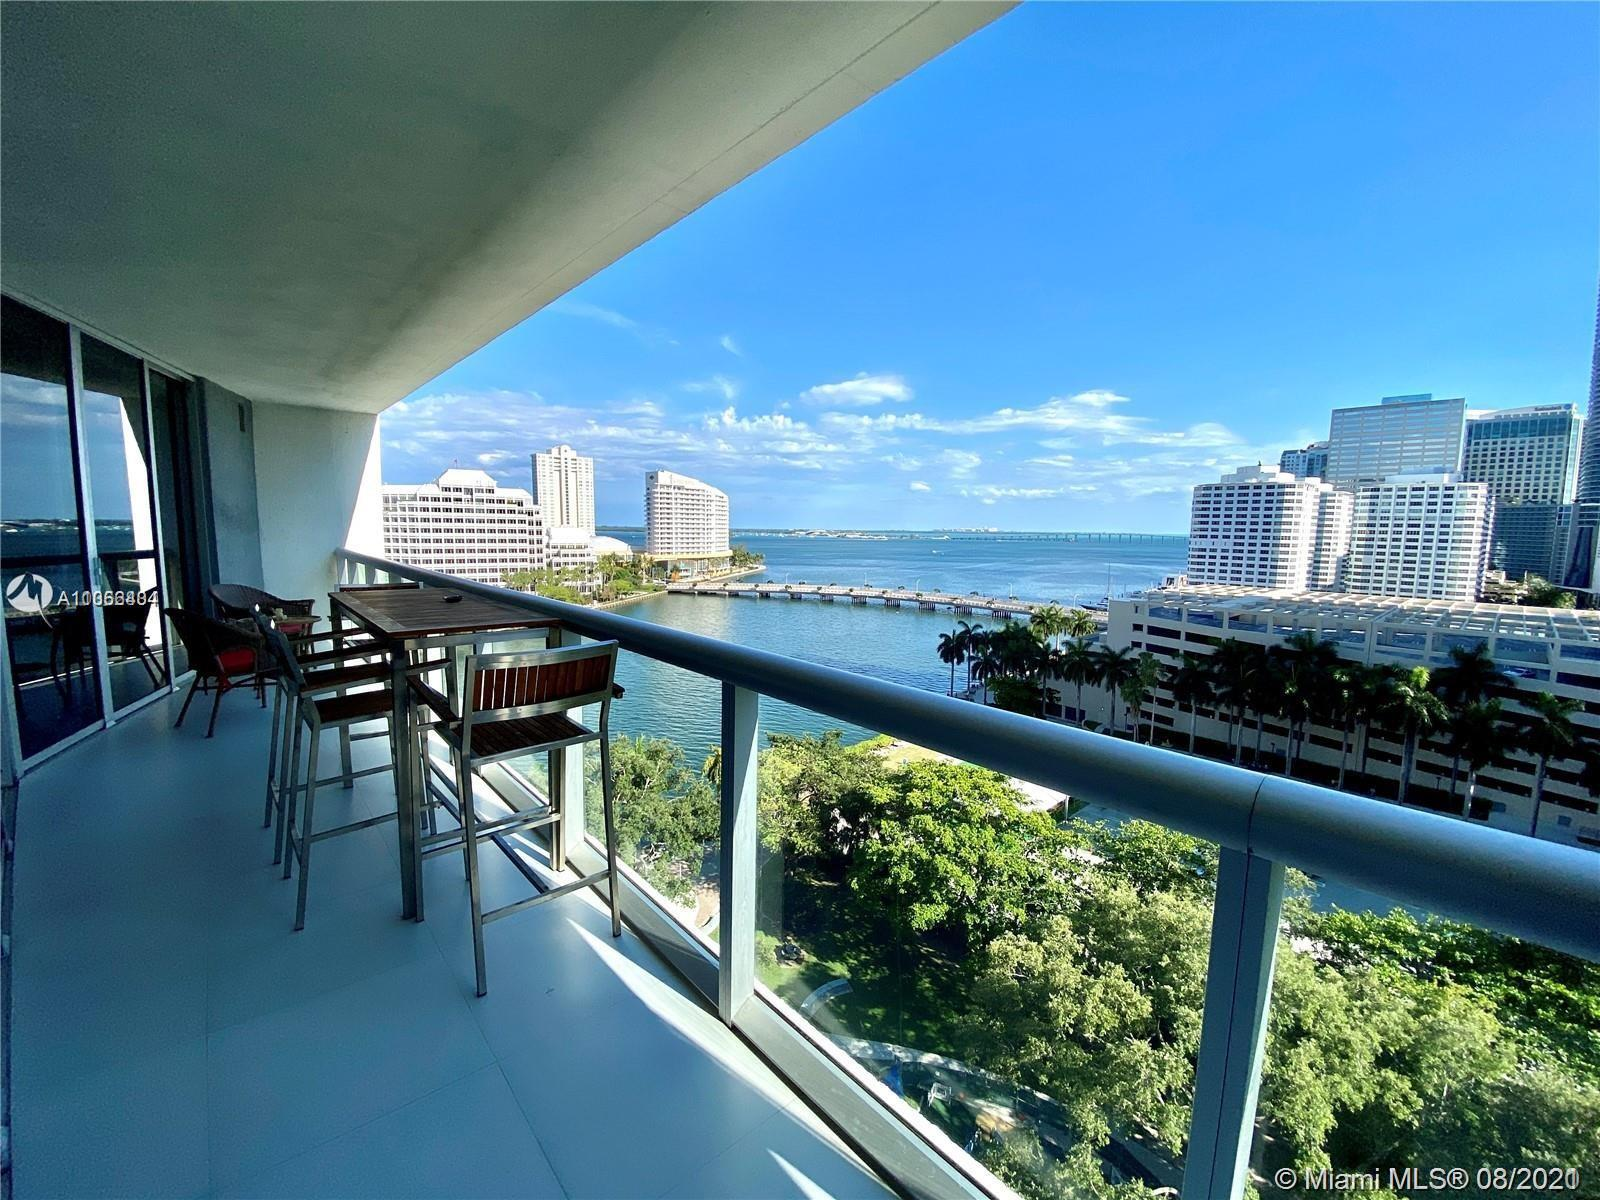 Enjoy Amazing views of the Bay and City from this 2 Bed+ DEN/ 2 Bath residence in the most desirable